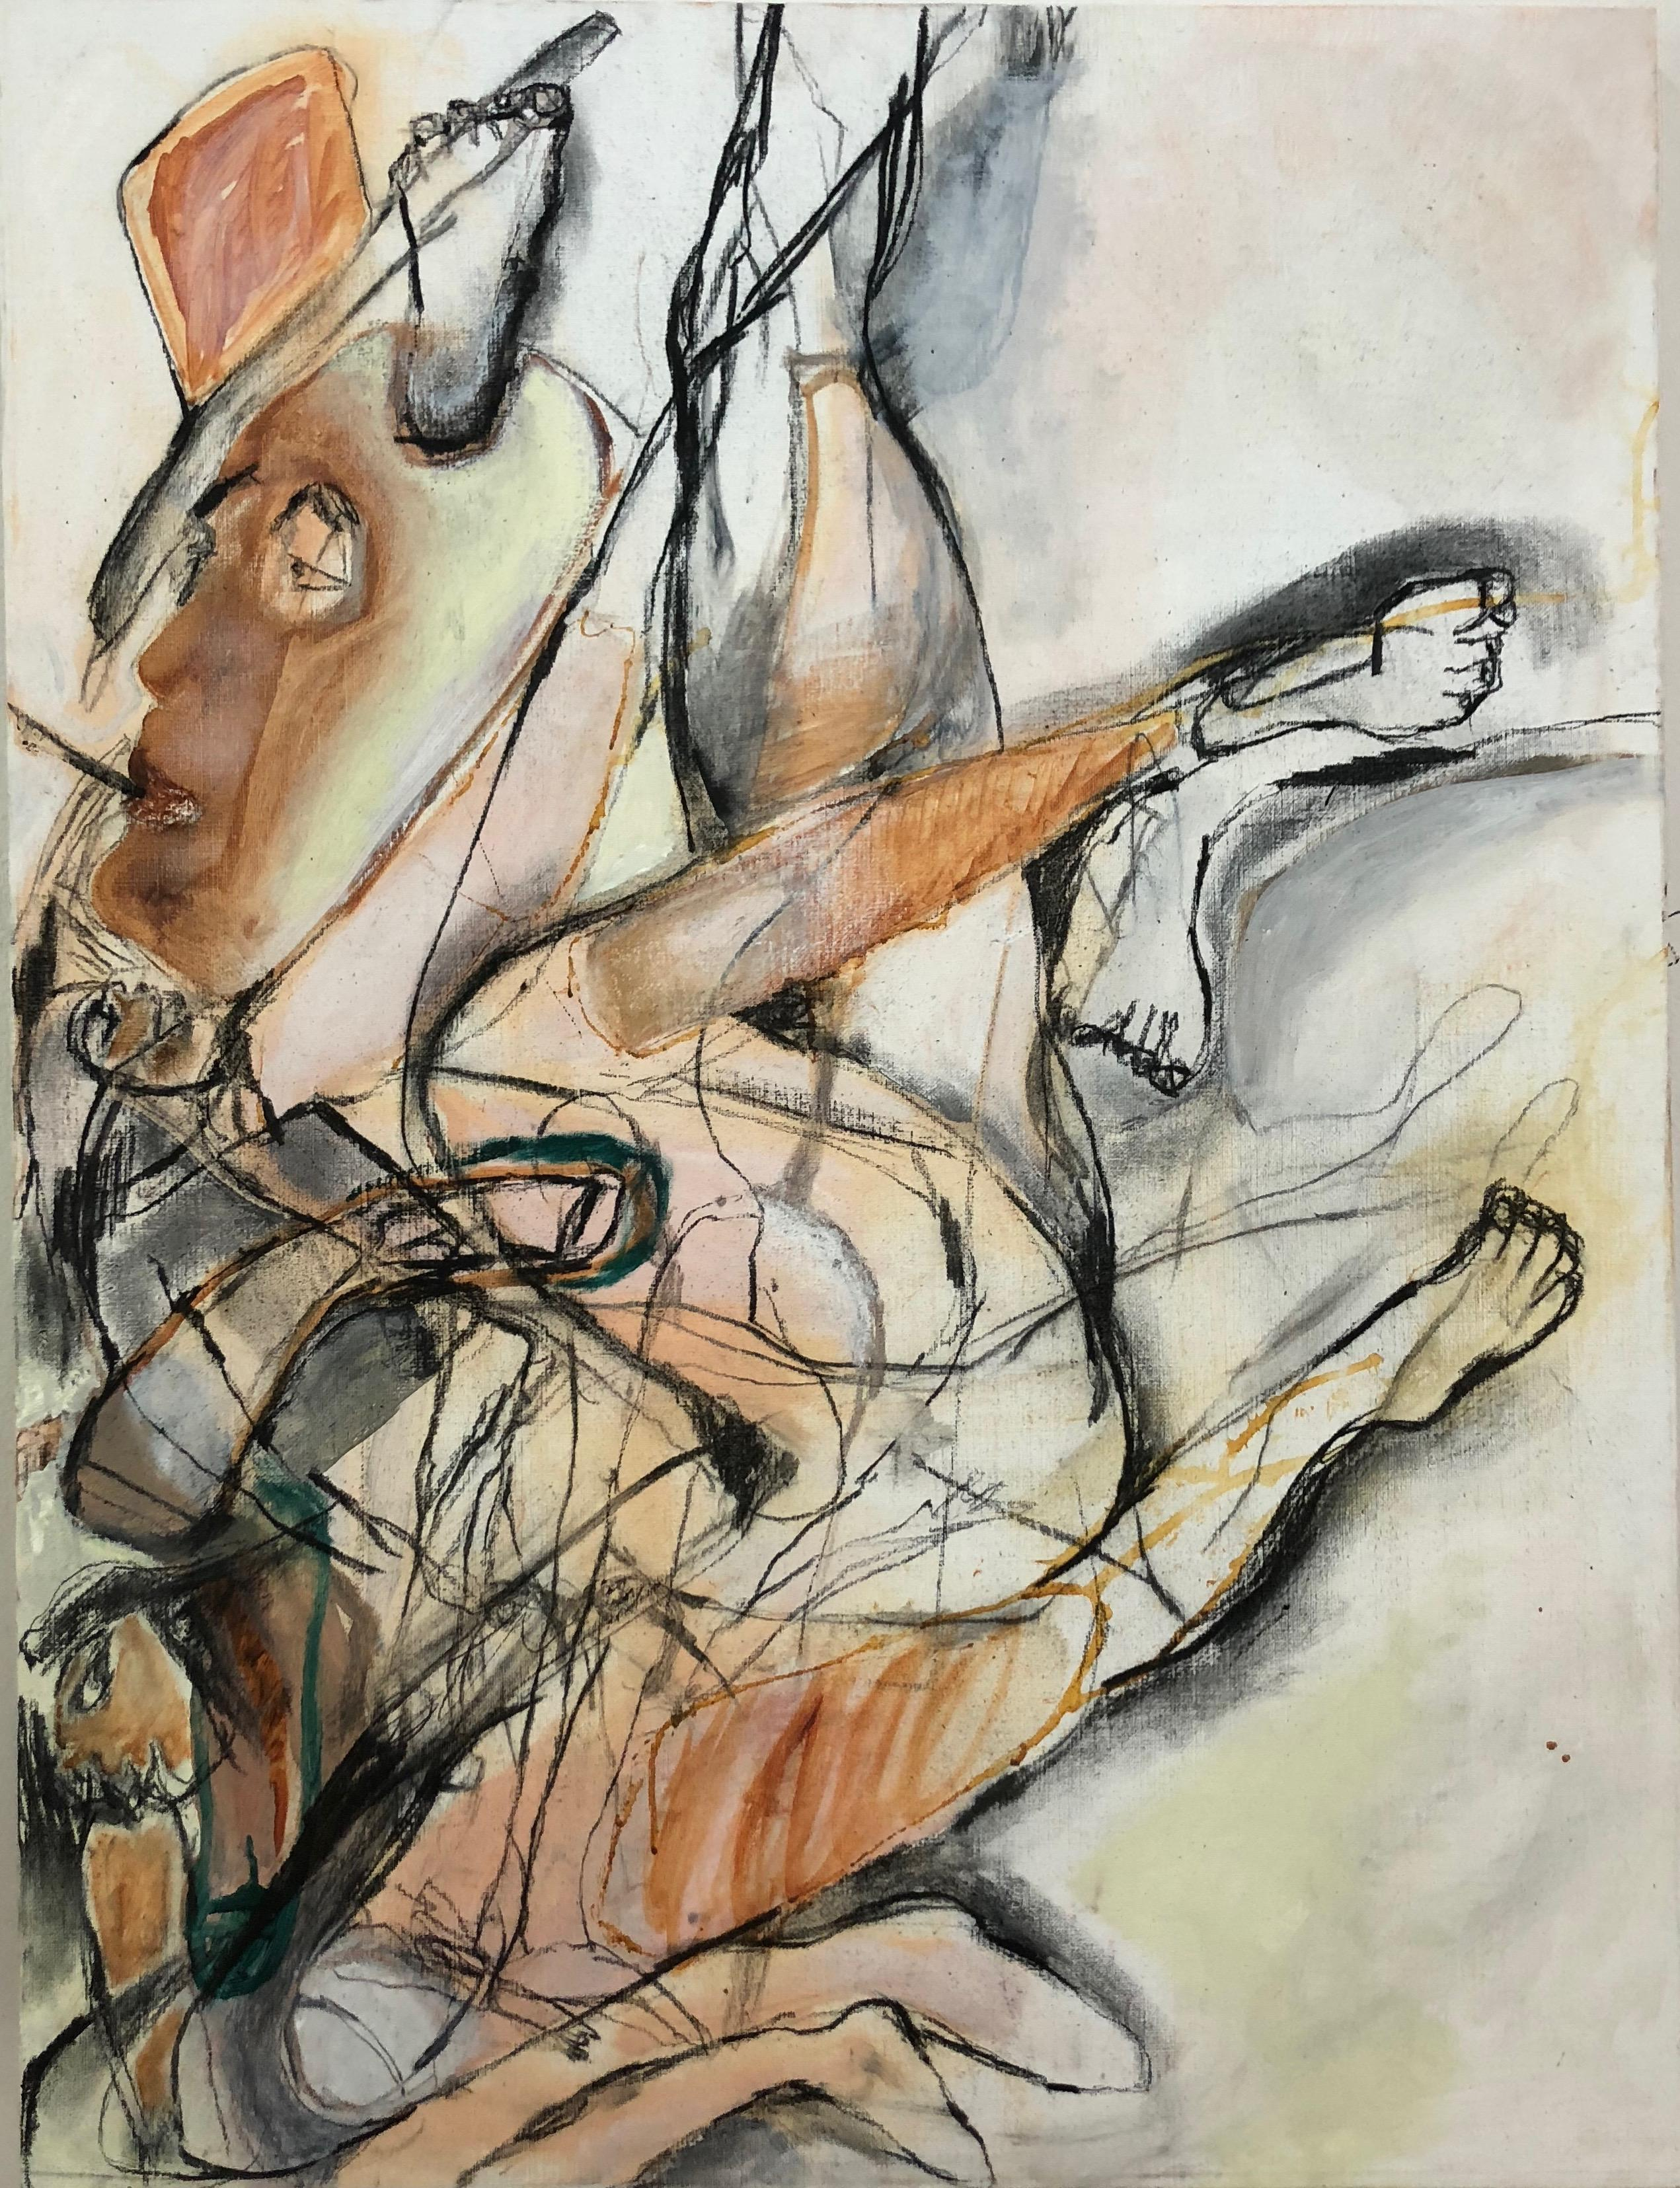 Spotlight One, abstracted figures, mixed media earth tones